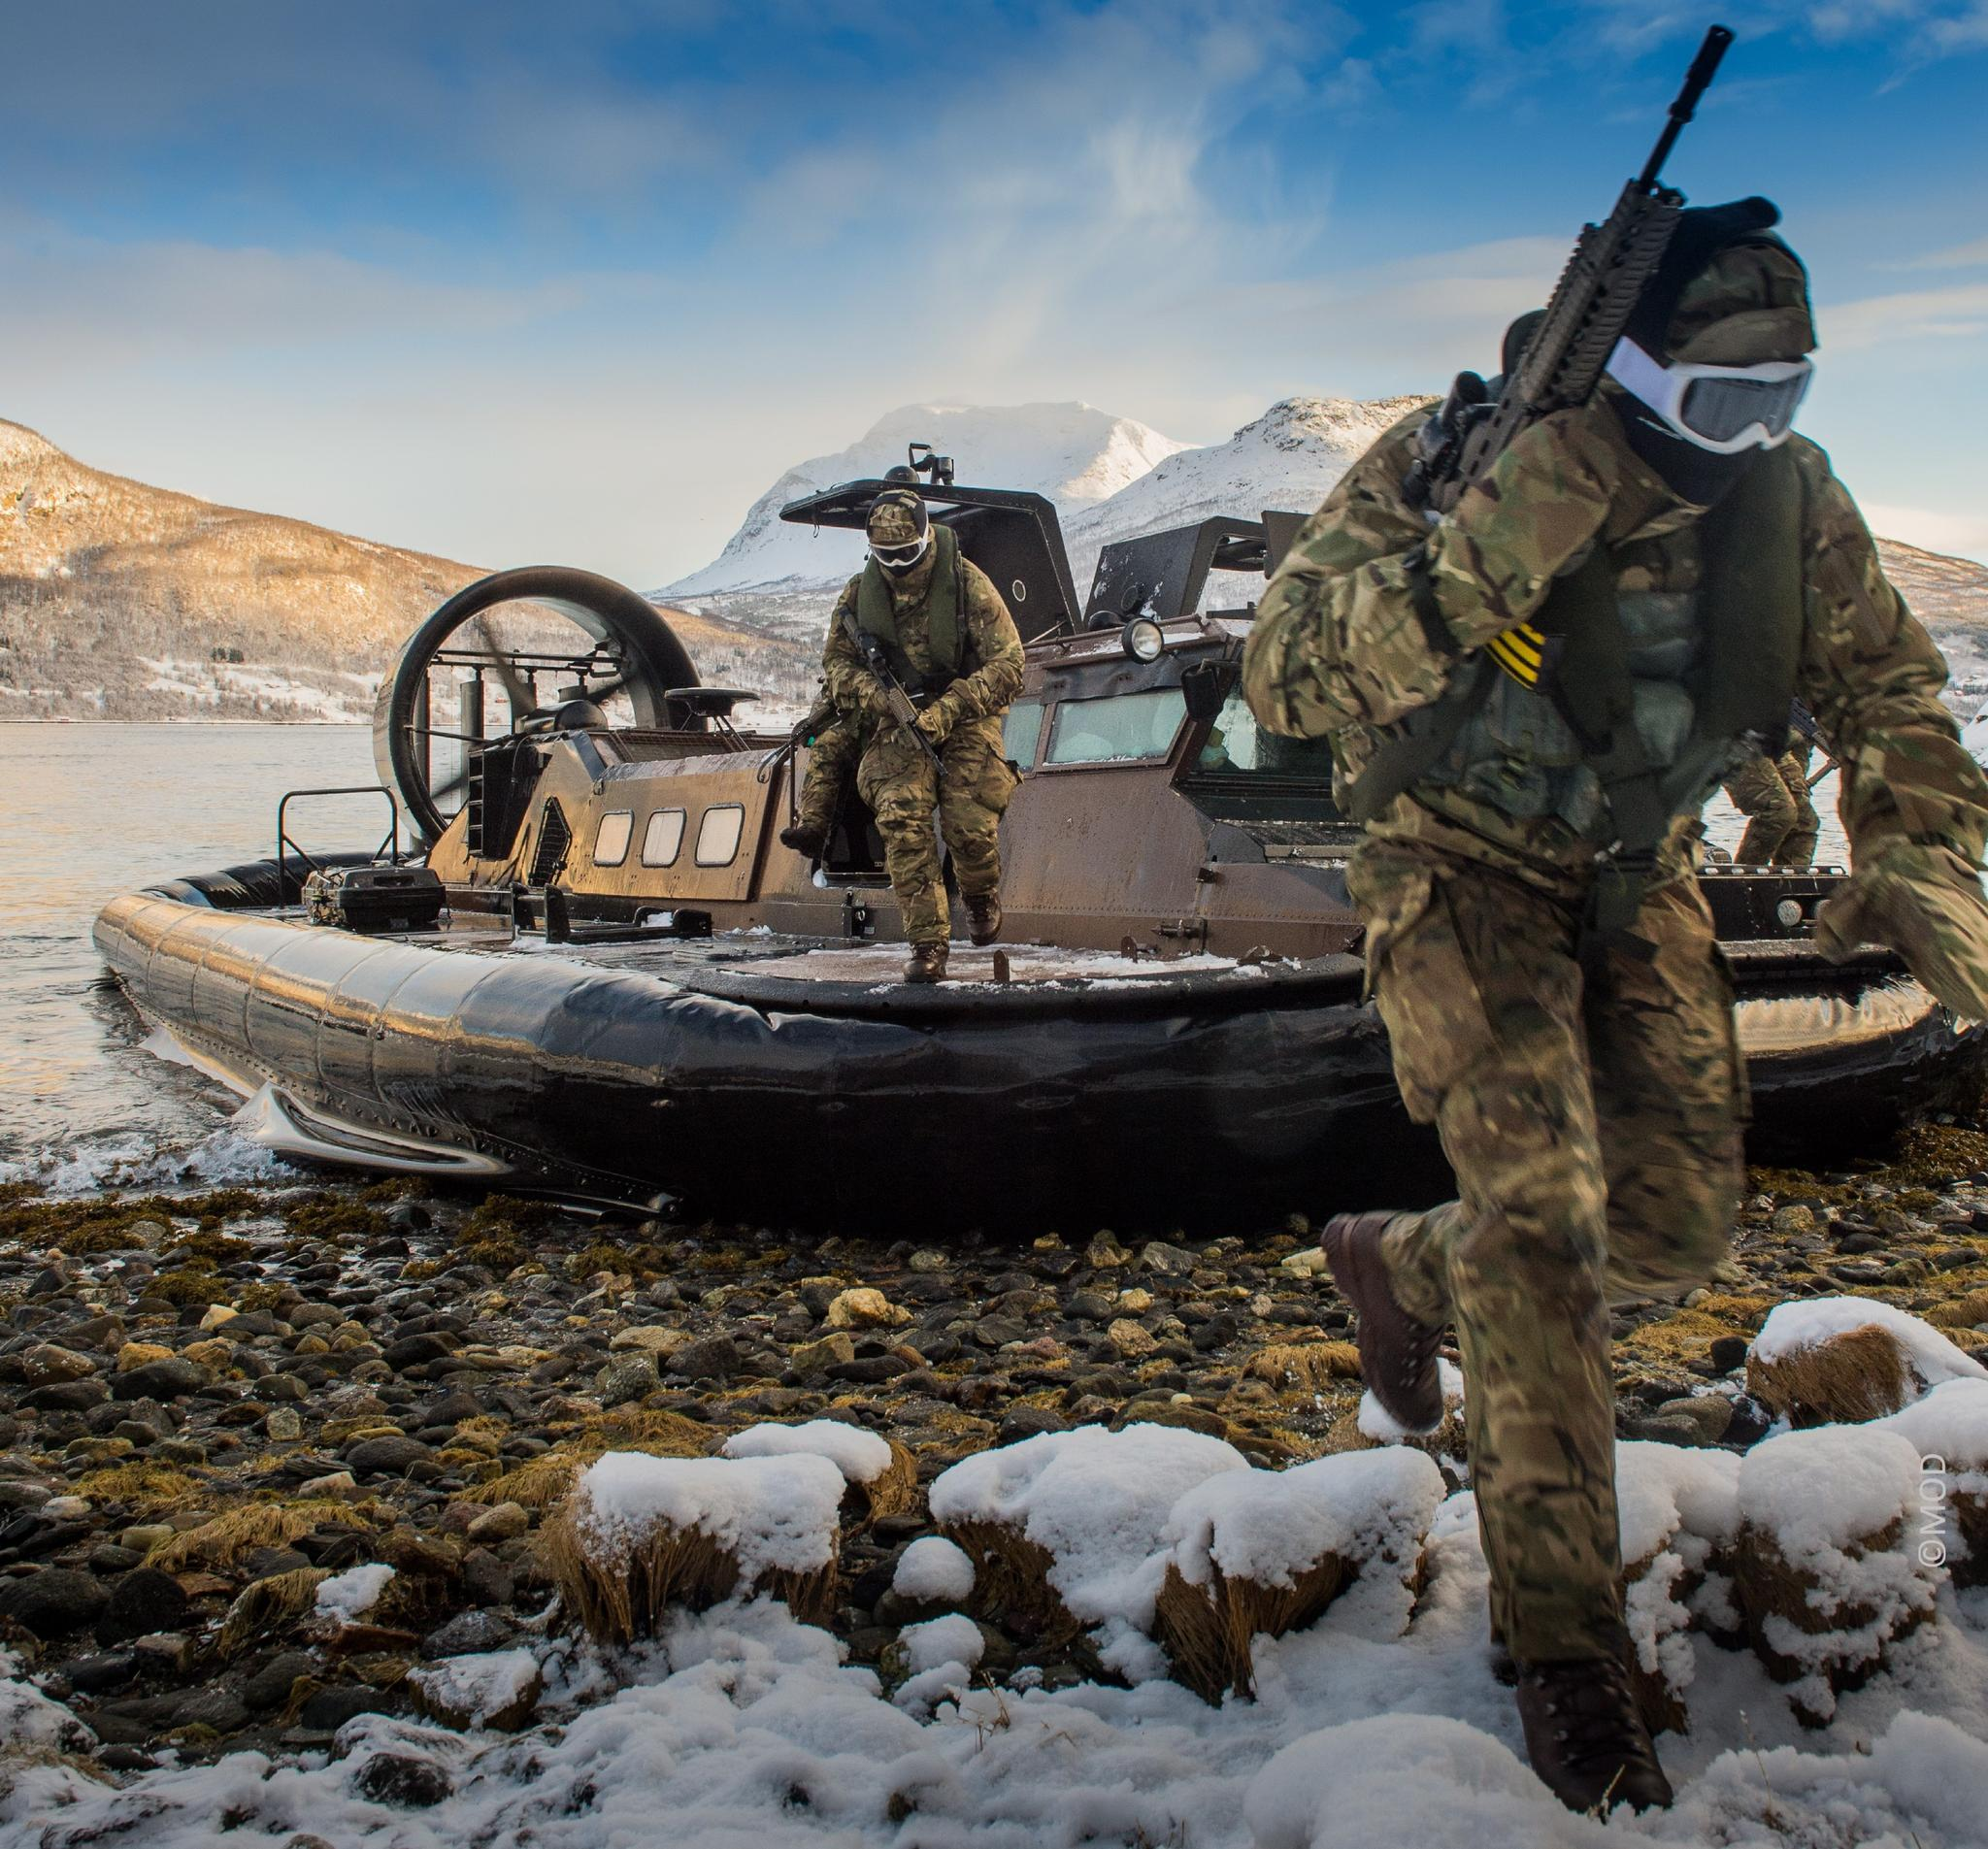 Cold weather Rigid Inflatable Boat soldier attack camouflage